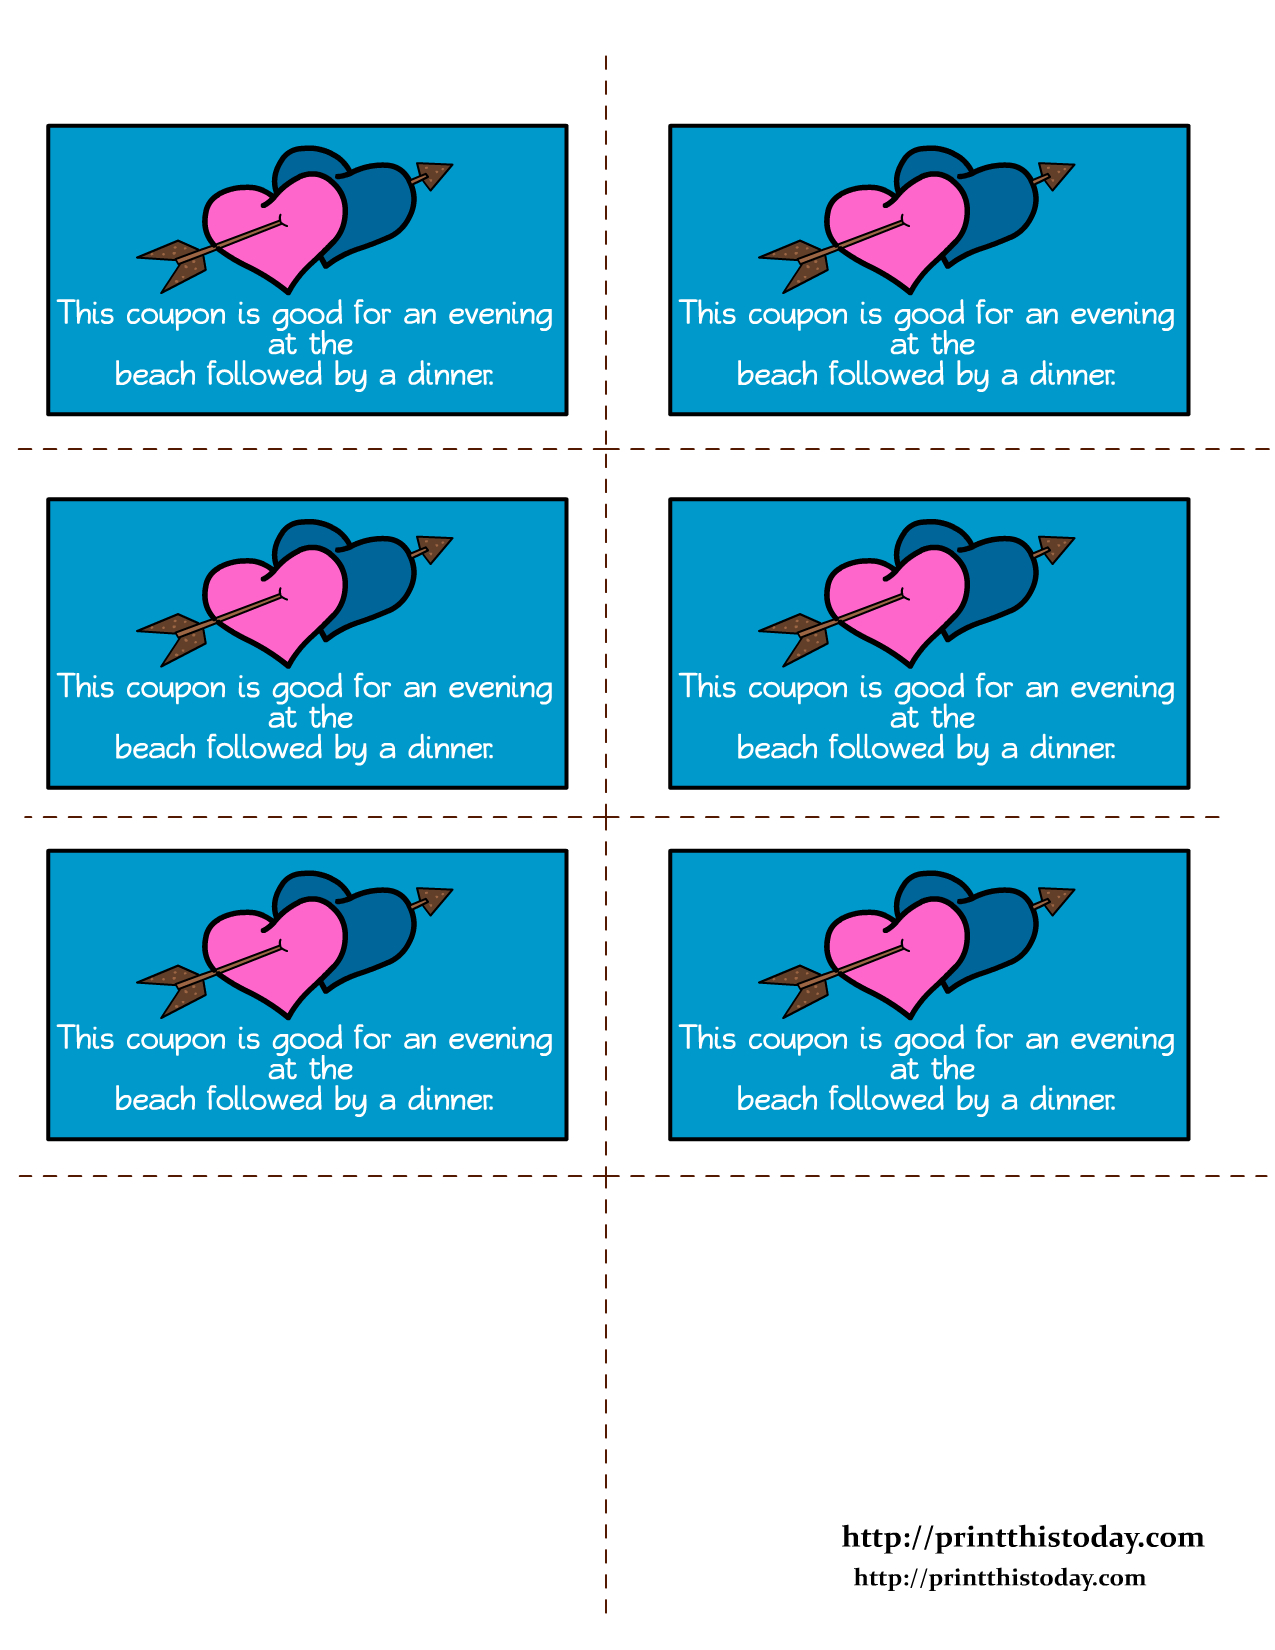 Free Printable Romantic Love Coupons - Free Printable Love Certificates For Him